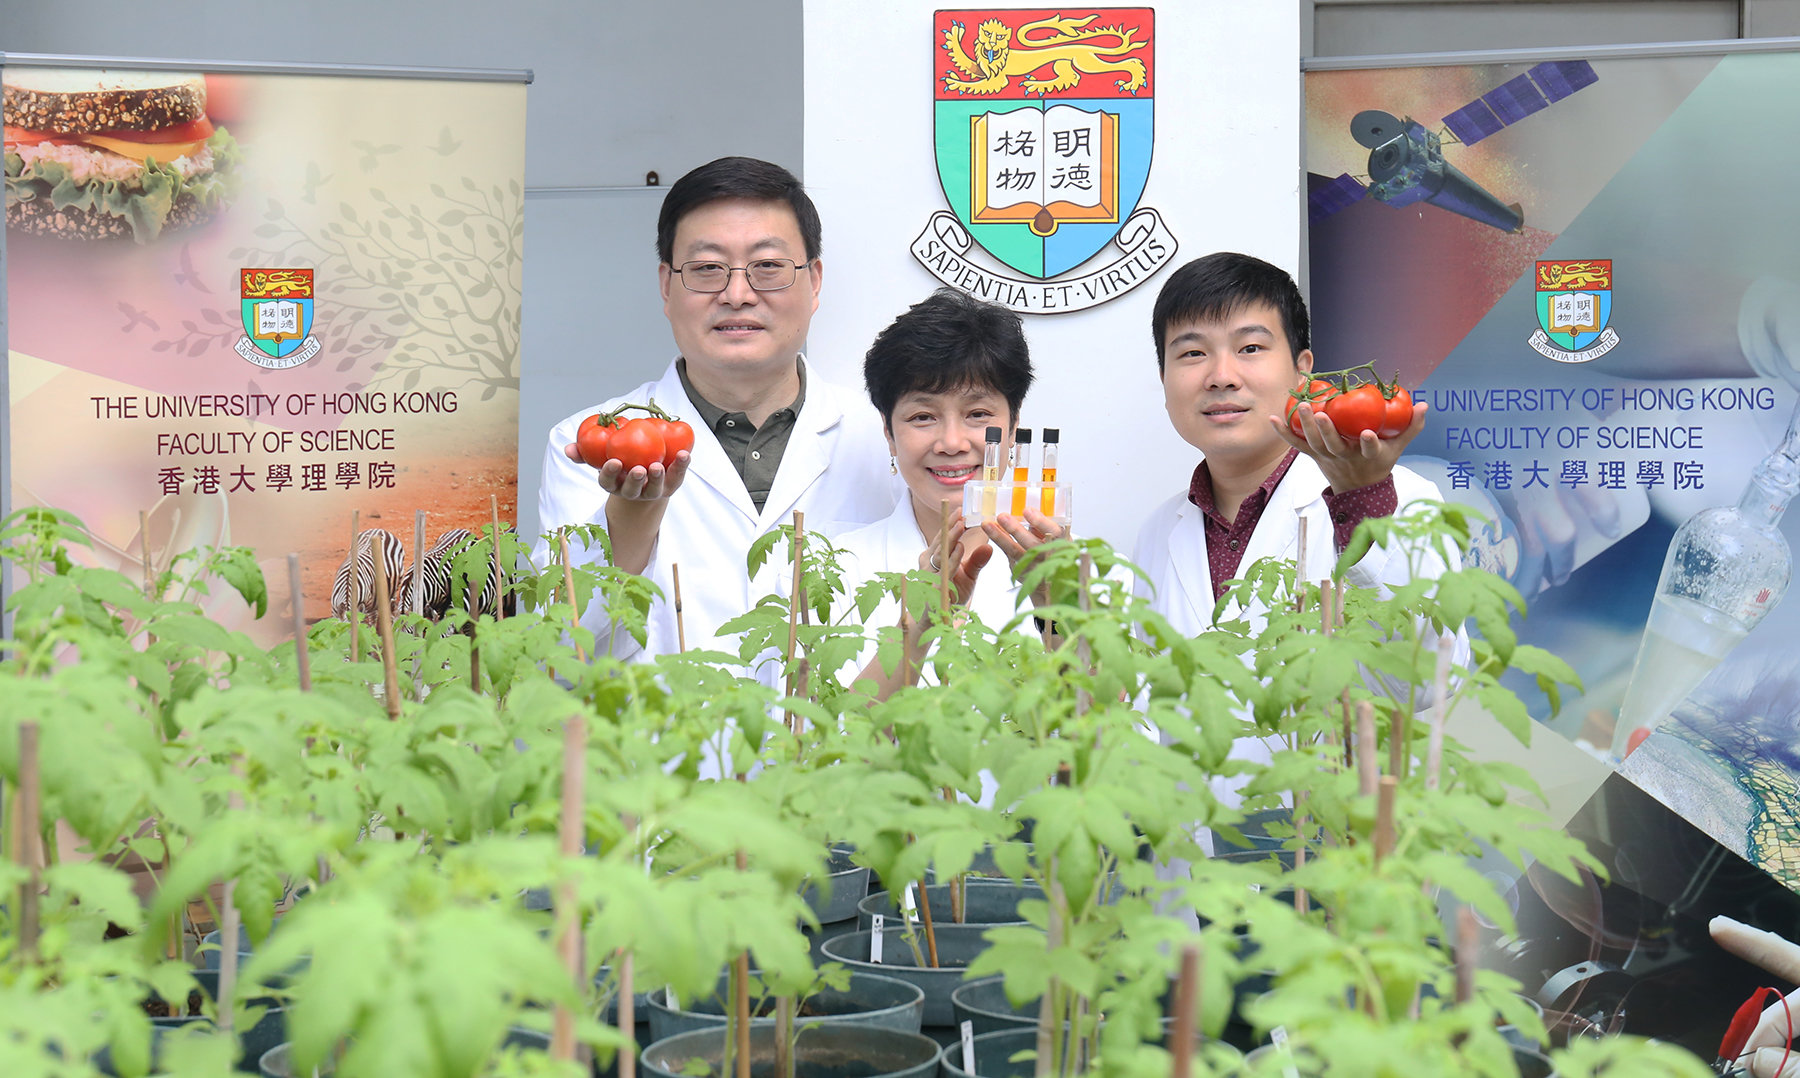 Researchers Generate Tomatoes With Enhanced Antioxidant Properties Prune Diagram Of Tomato Plant From Left Dr Wang Mingfu Professor Chye Mee Len And Liao Pan Show Tubes Containing Carotenoid Extracts S359a Fruits The Control